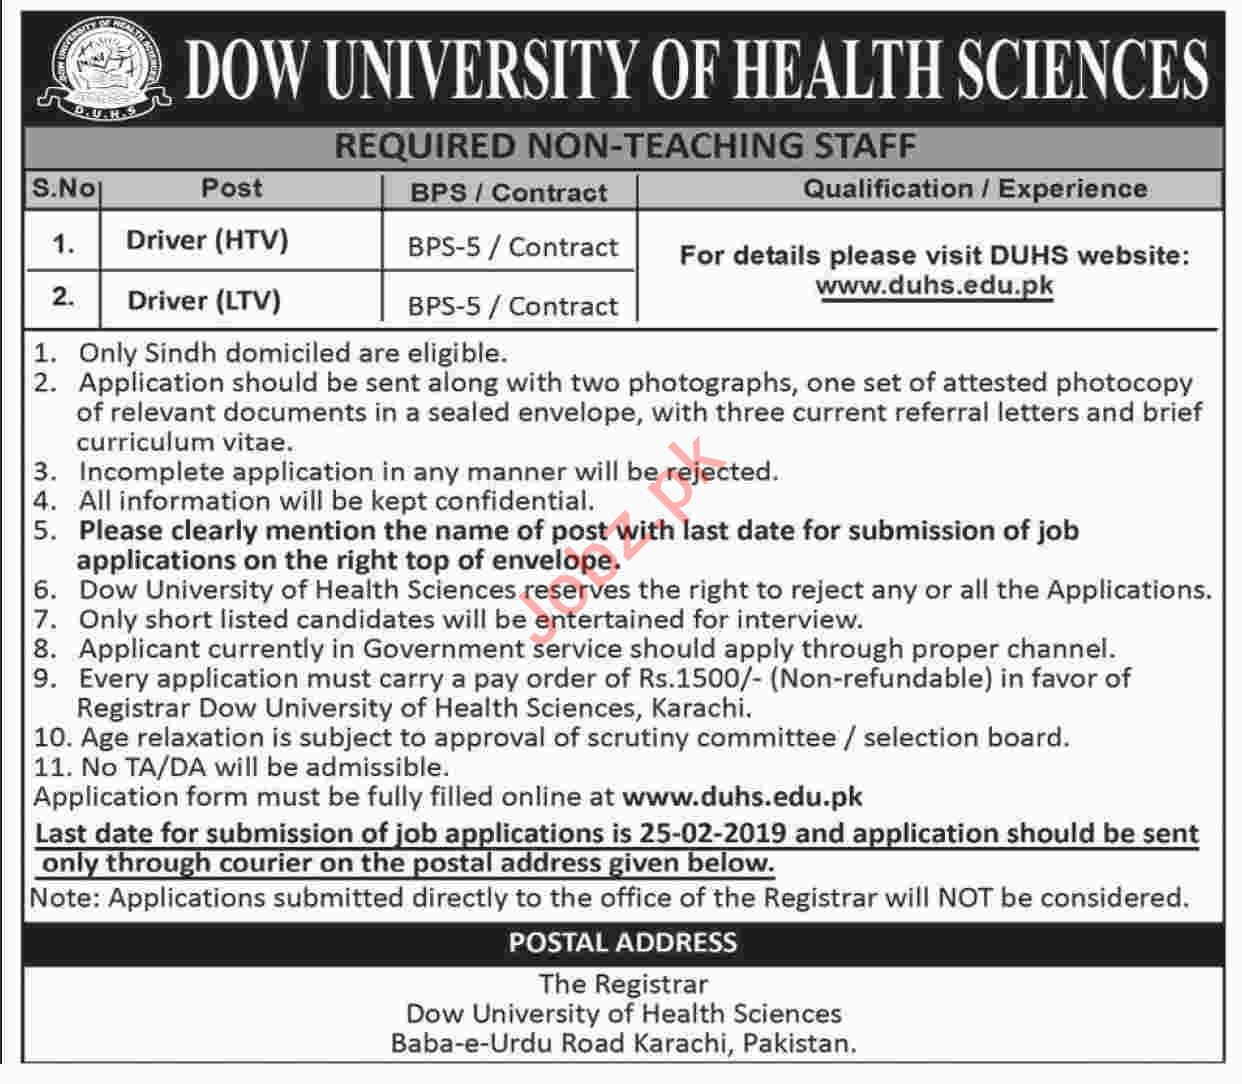 Dow University of Health and Sciences HTV Driver Jobs